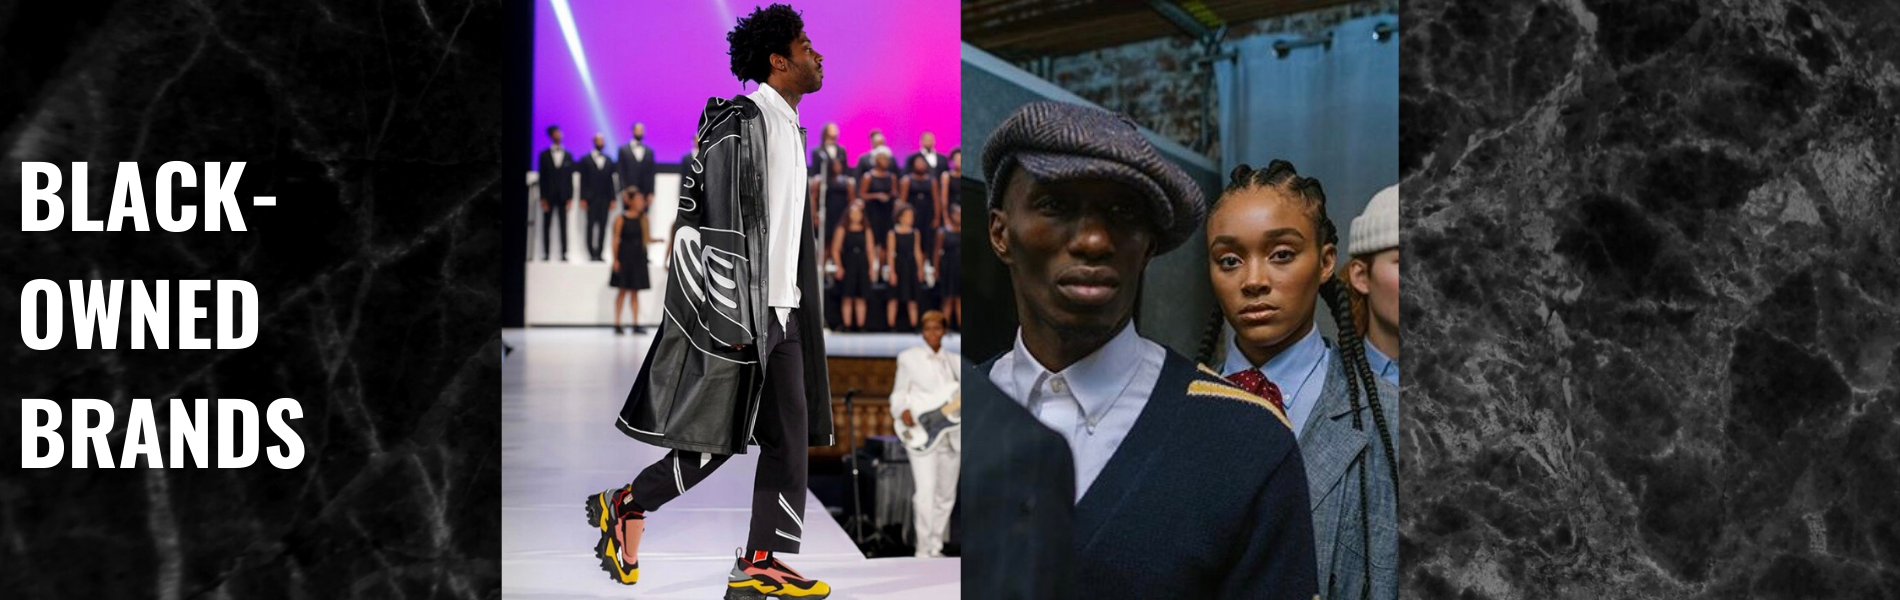 Black-Owned Men's Fashion Brands to Support on BlackOutDay2020